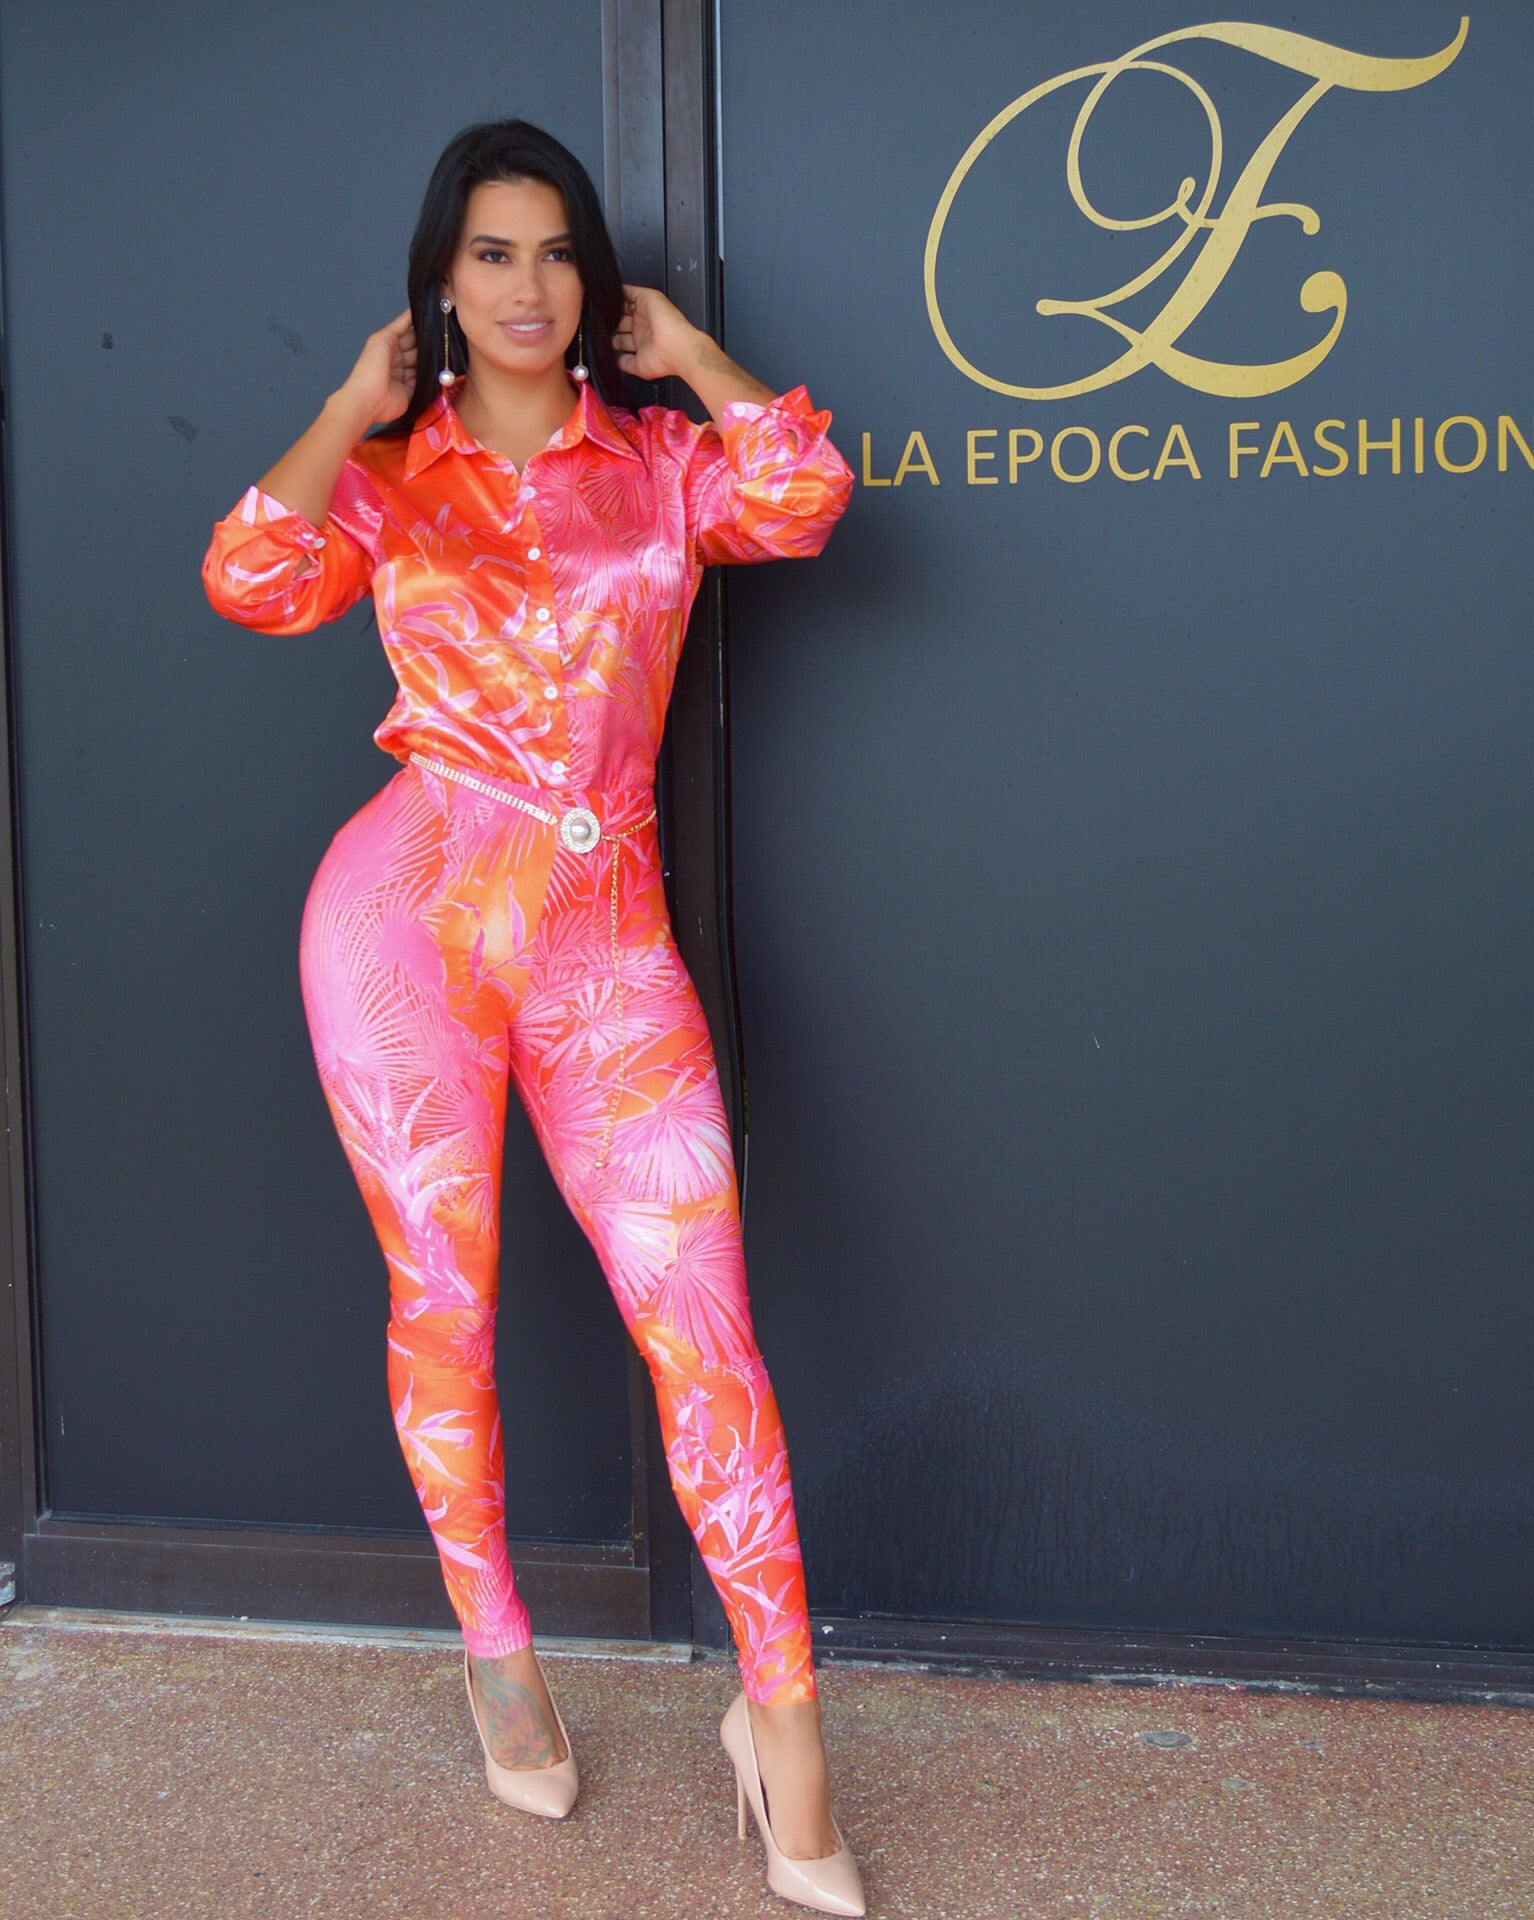 Caribbean Queen Leave Print Pants Set - La Epoca Fashion